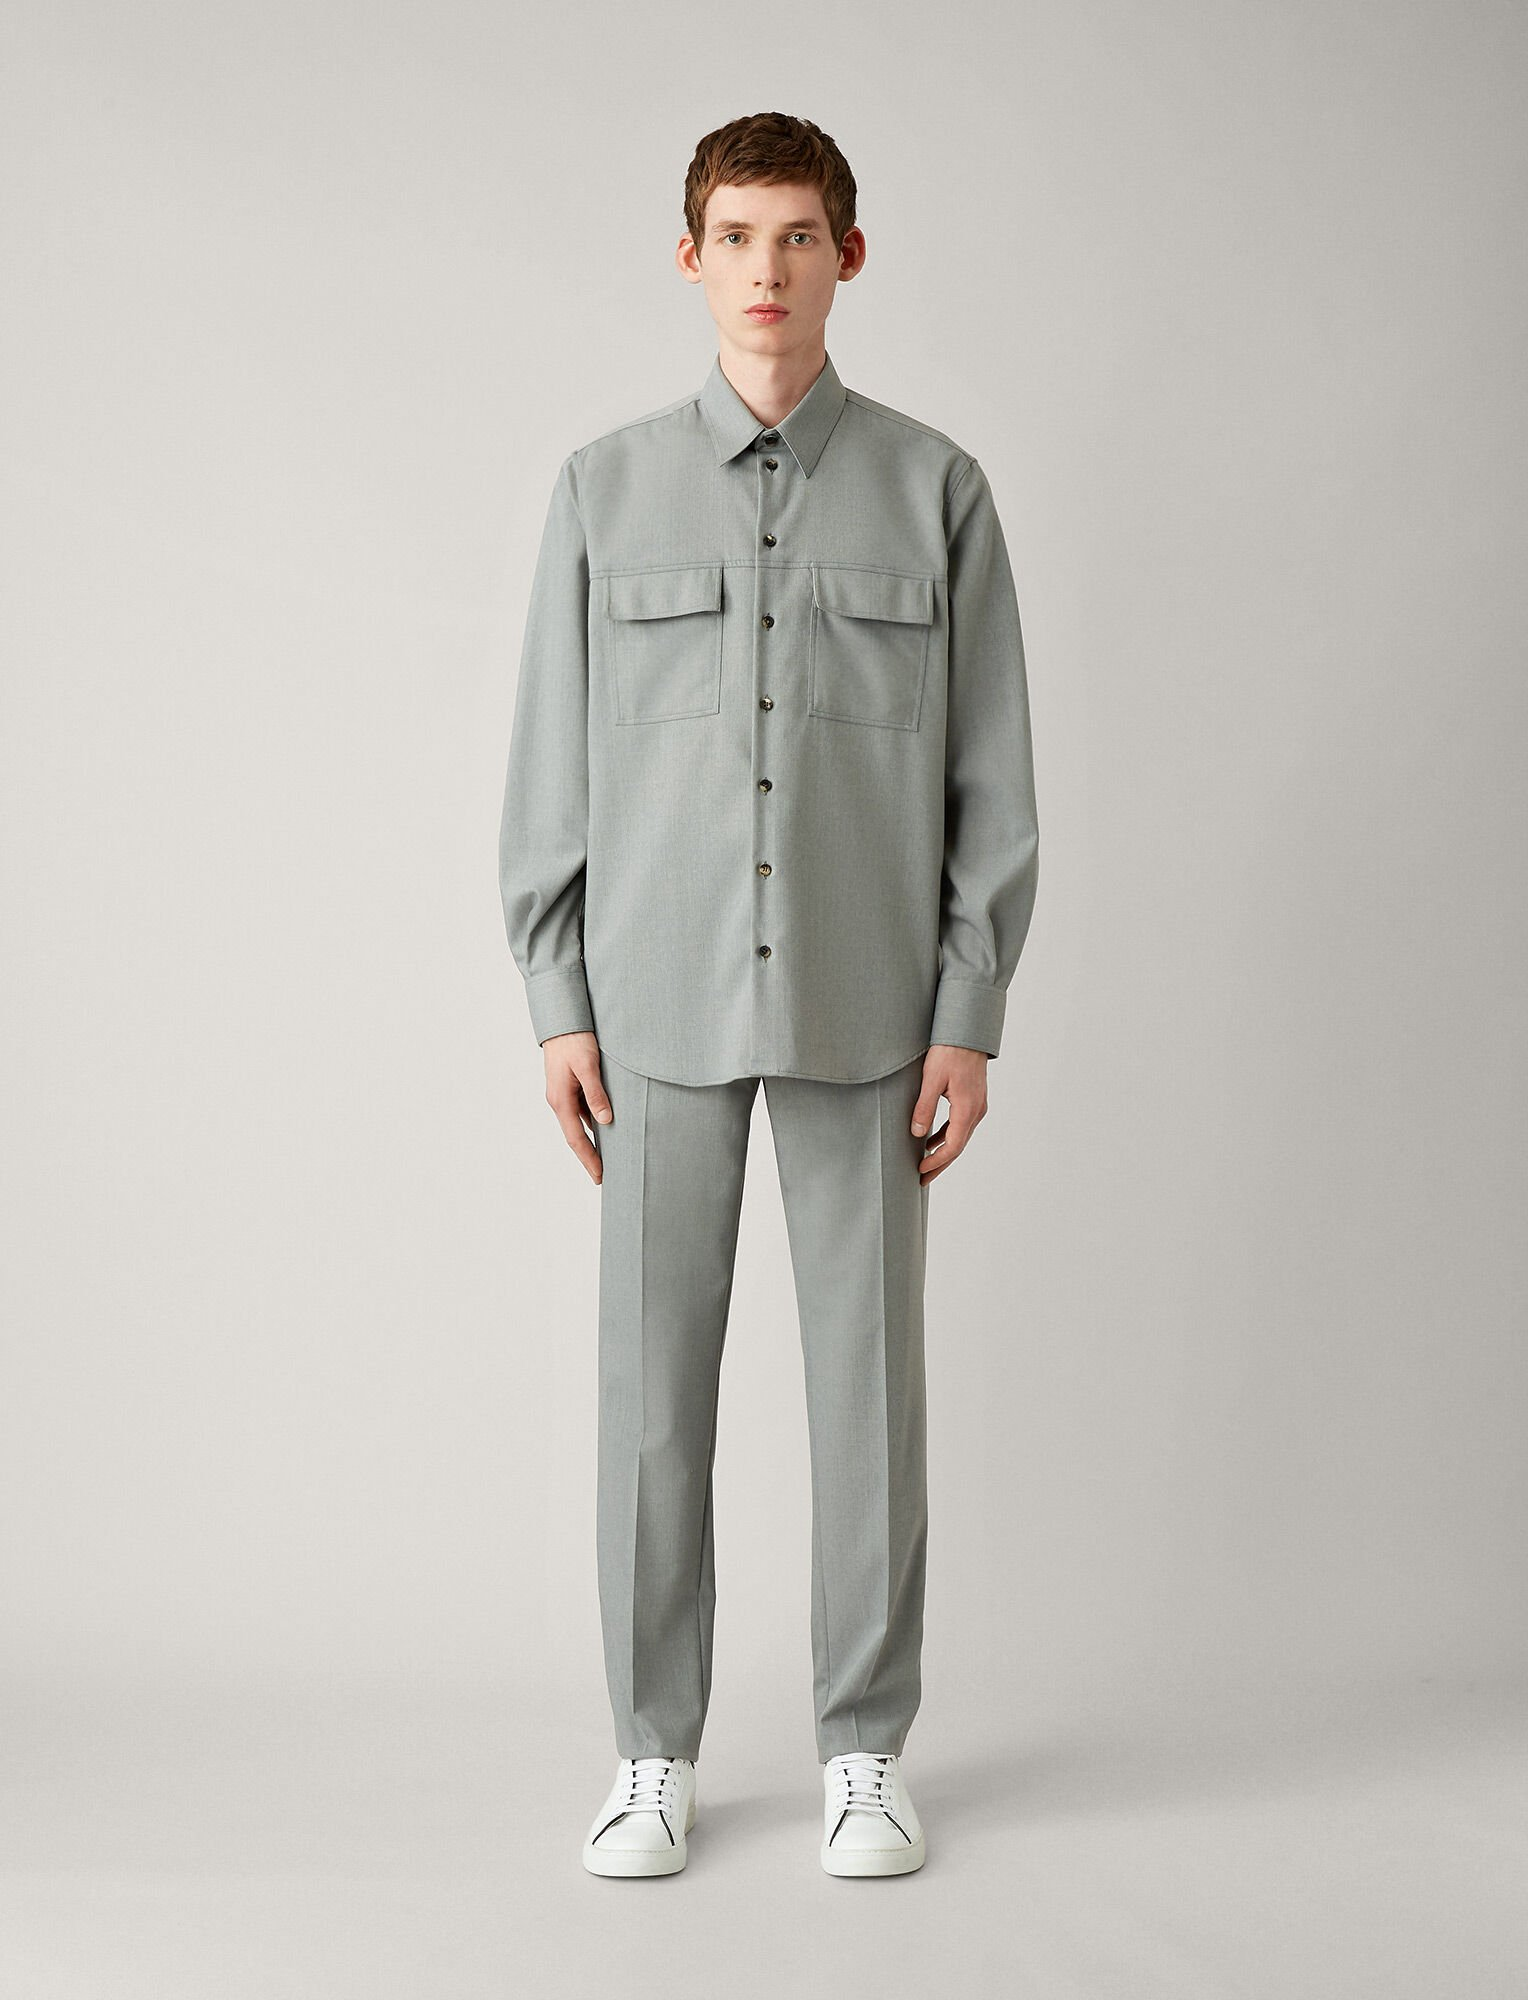 Joseph, Norman Fine Comfort Wool Shirt, in GREY CHINE